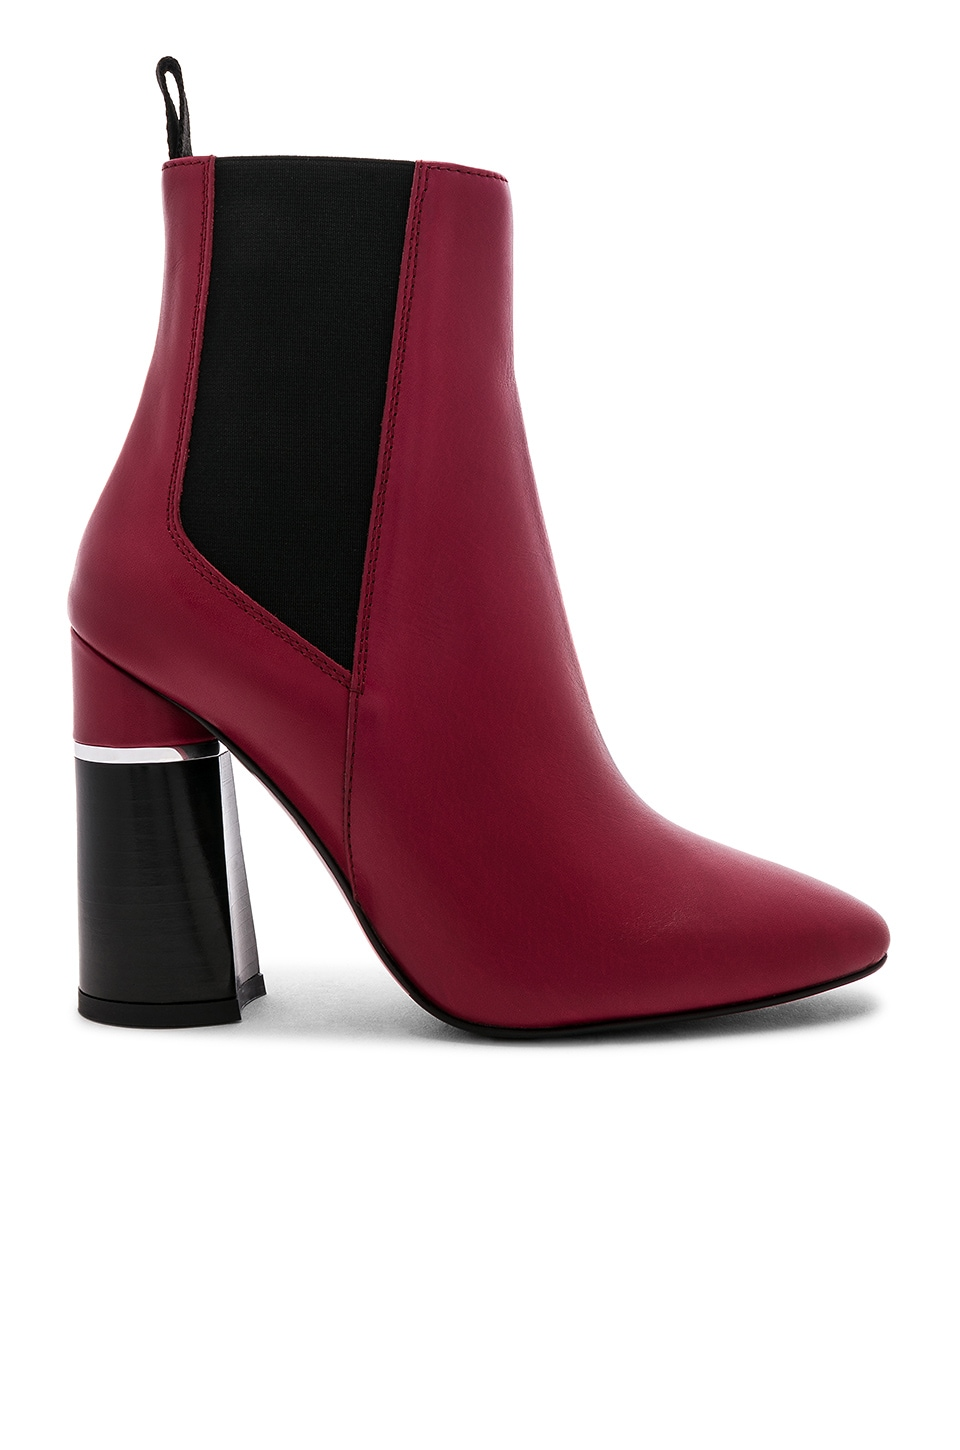 3.1 phillip lim Drum Chelsea Boot in Rouge